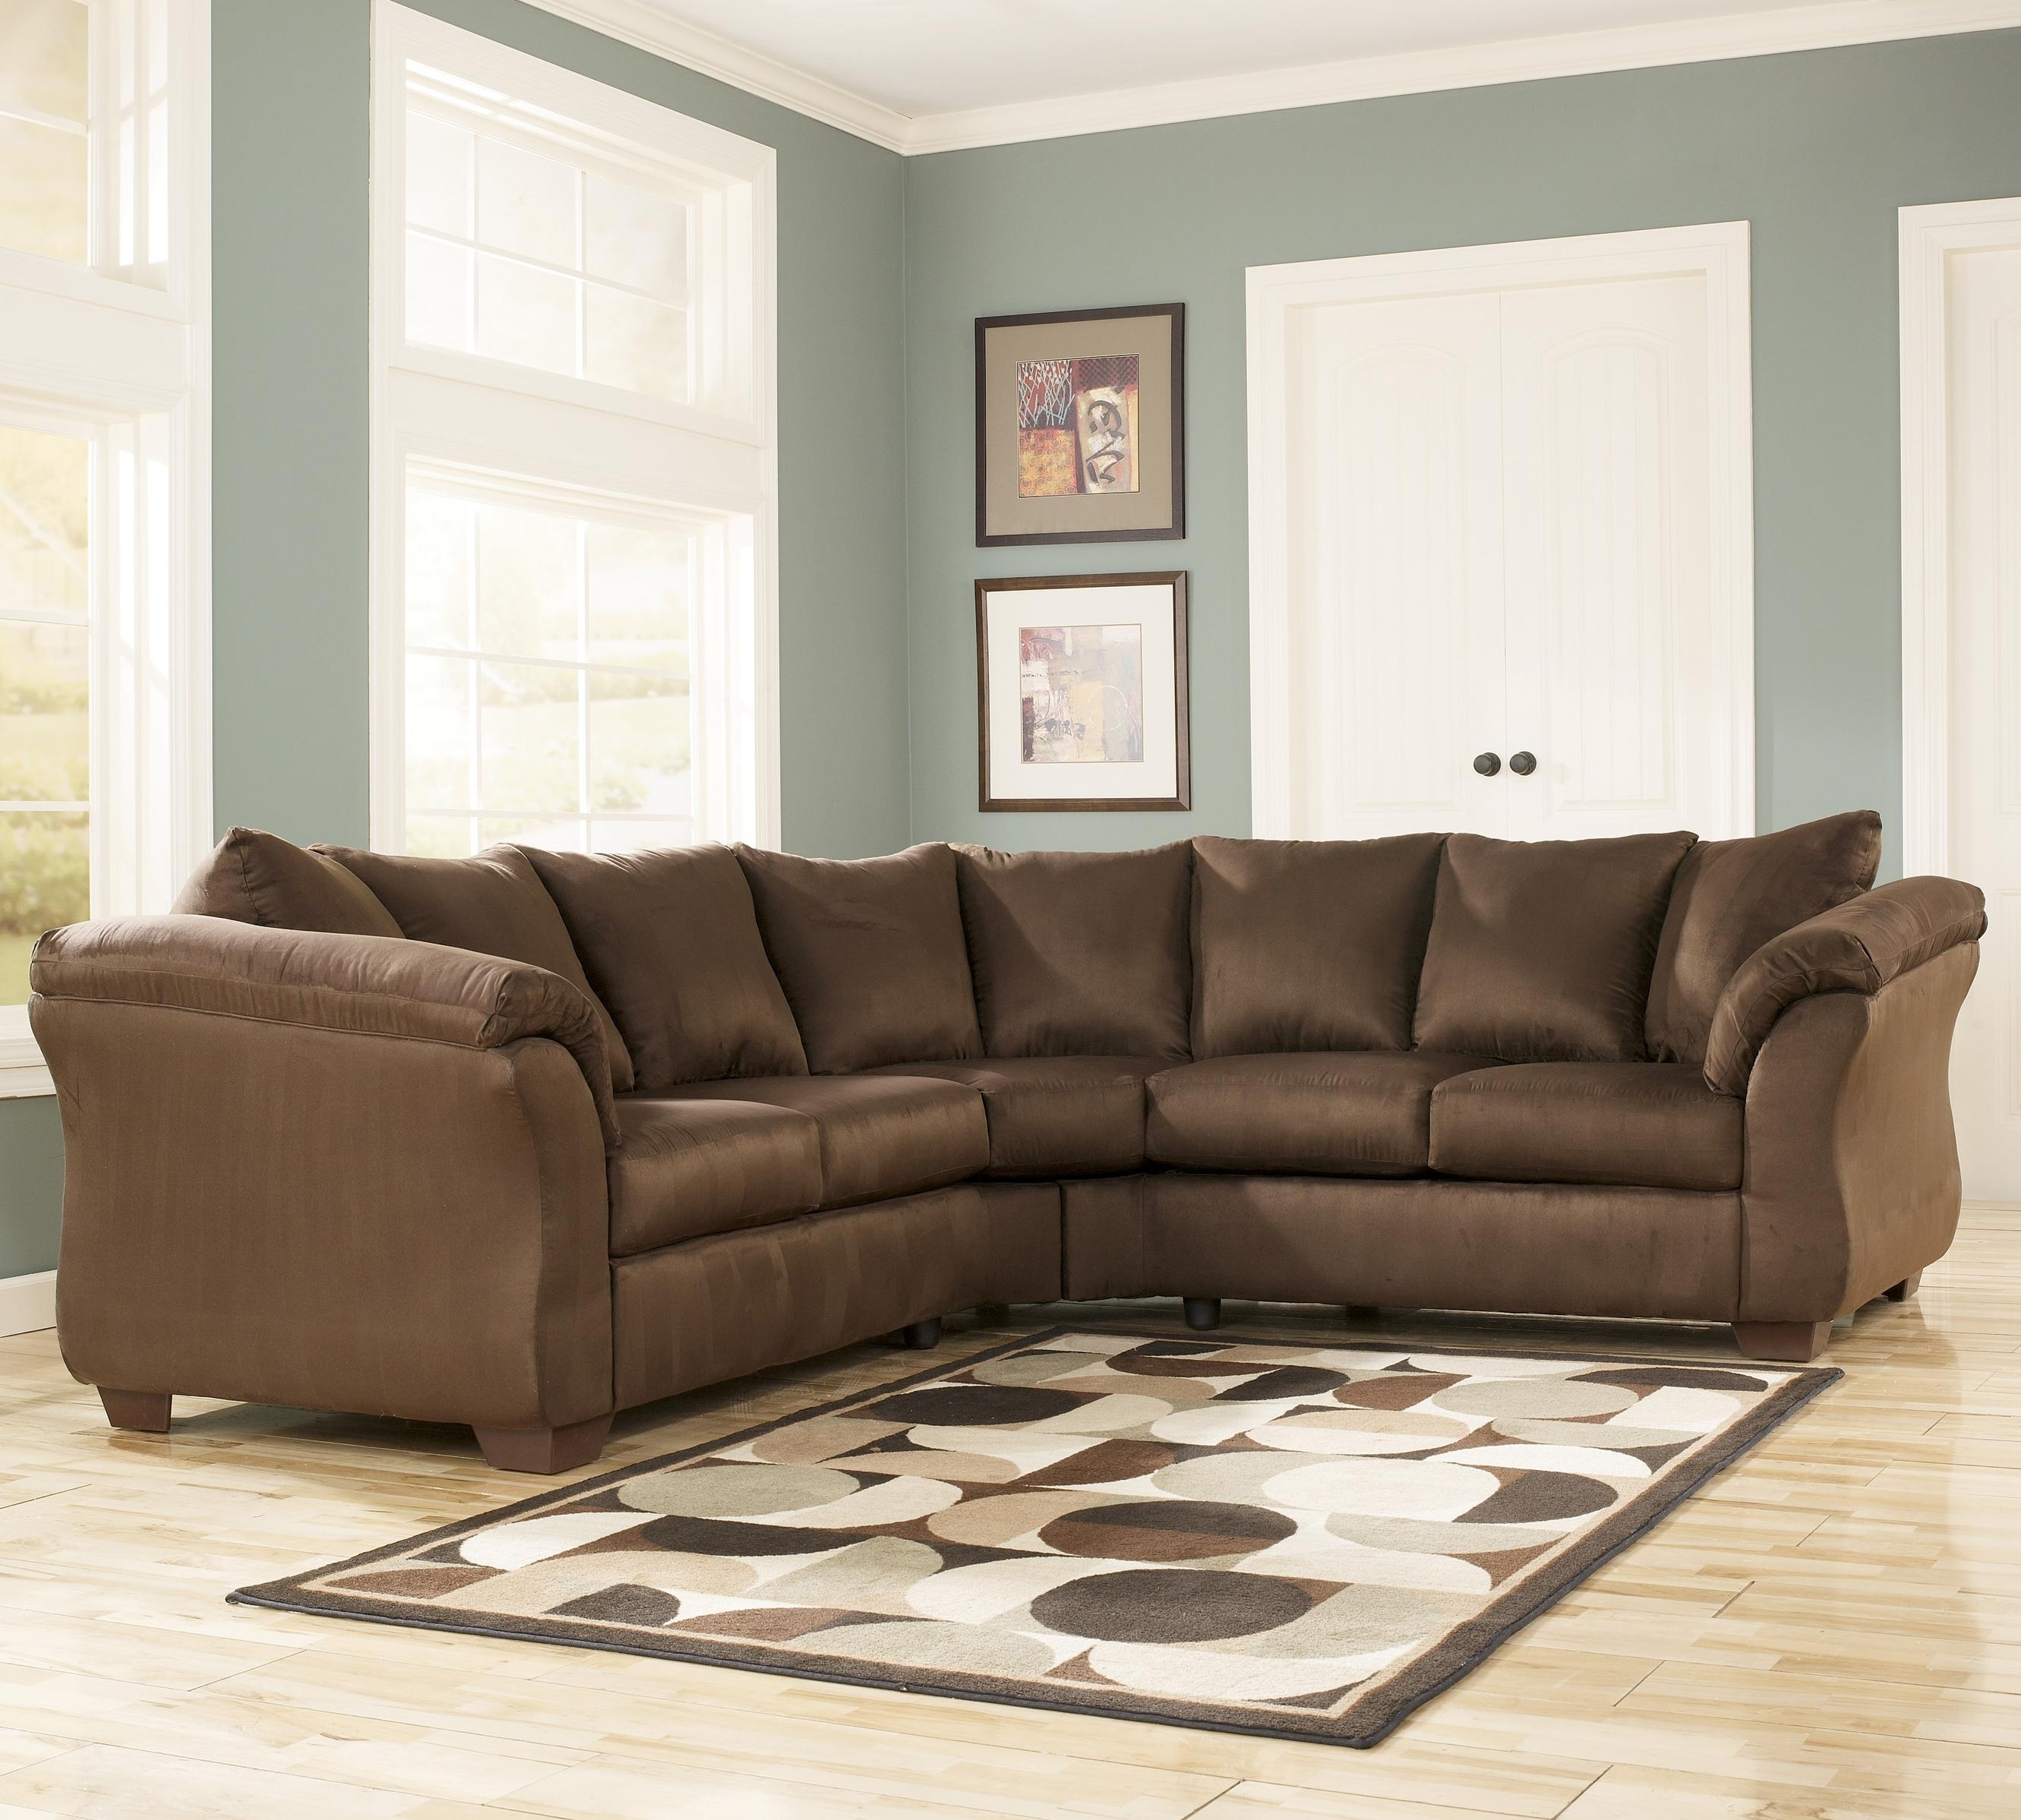 2018 Latest Jacksonville Nc Sectional Sofas